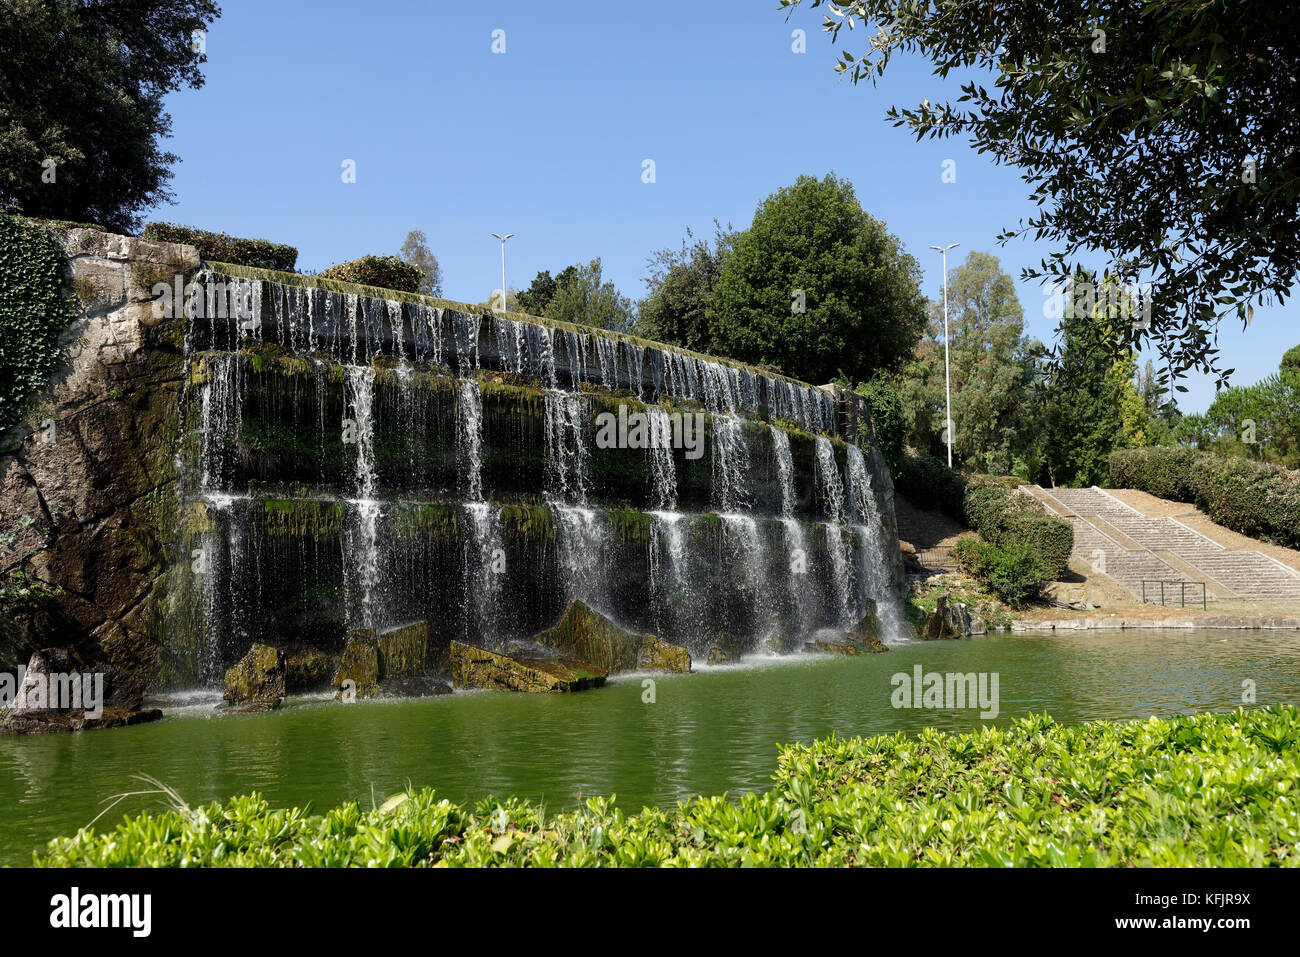 Giardino Cascate Eur Cascate Italy Stock Photos And Cascate Italy Stock Images